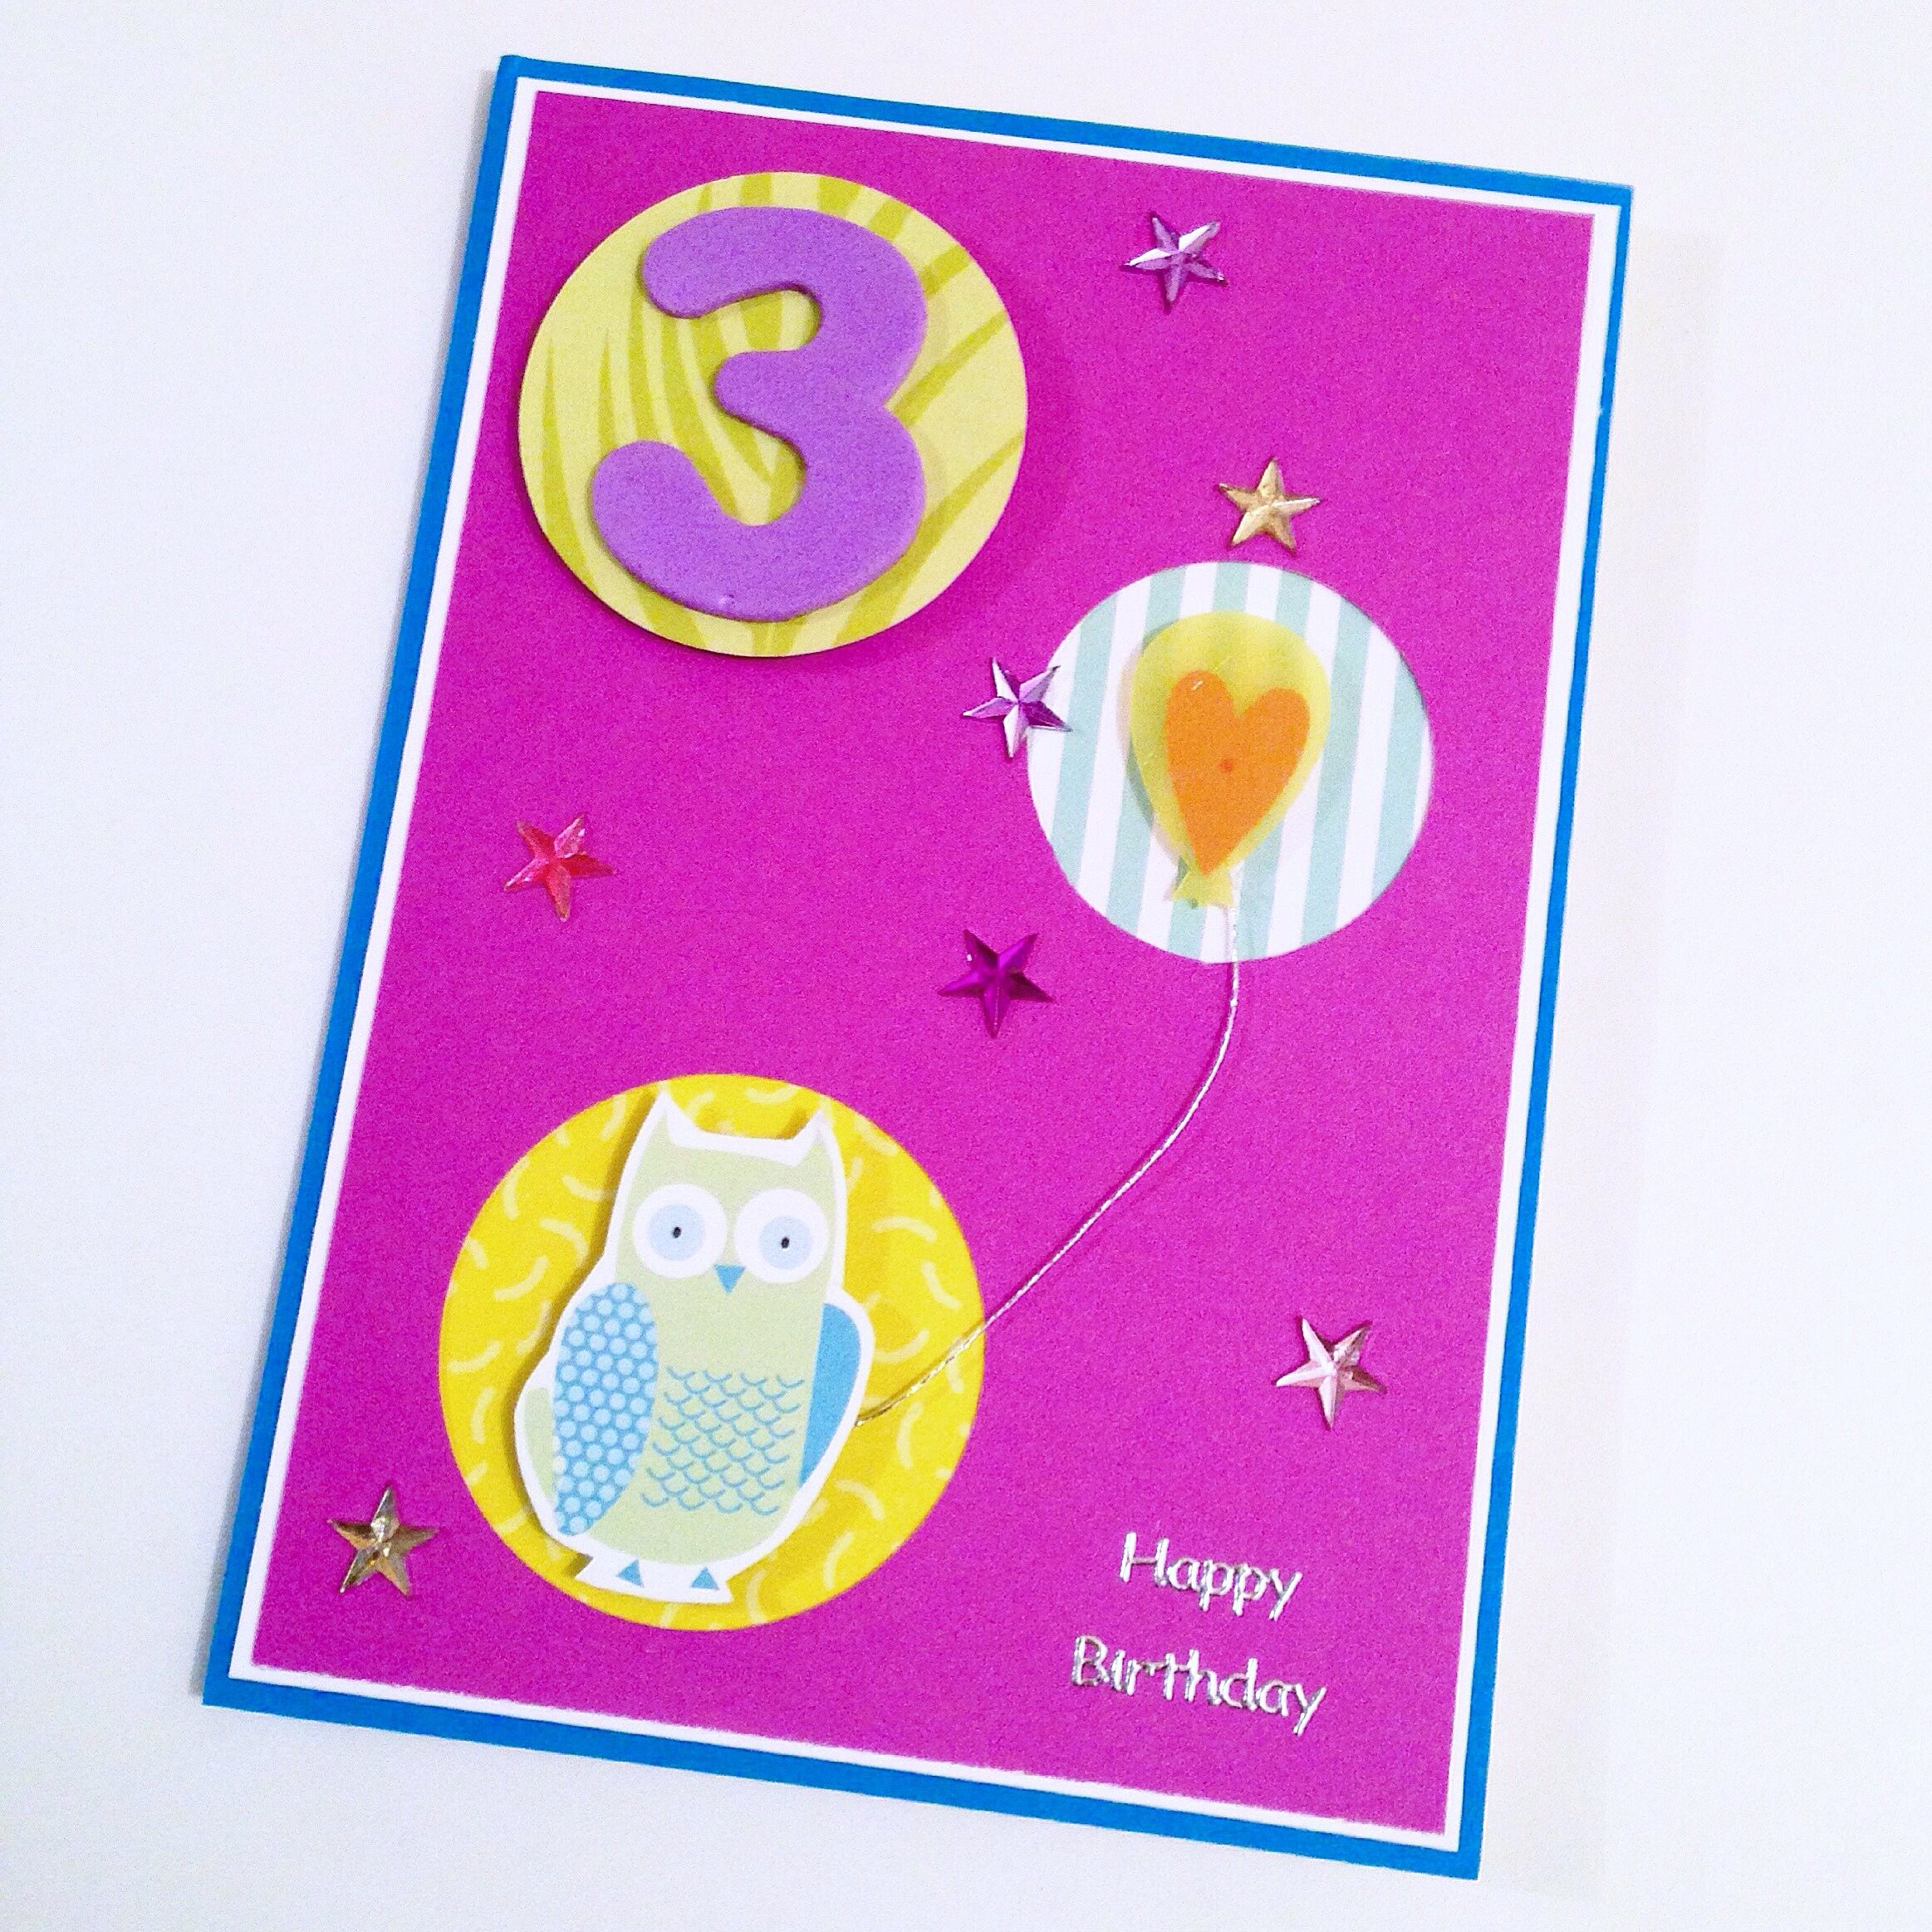 Loved Making This 3 Year Old Birthday Card For My Little